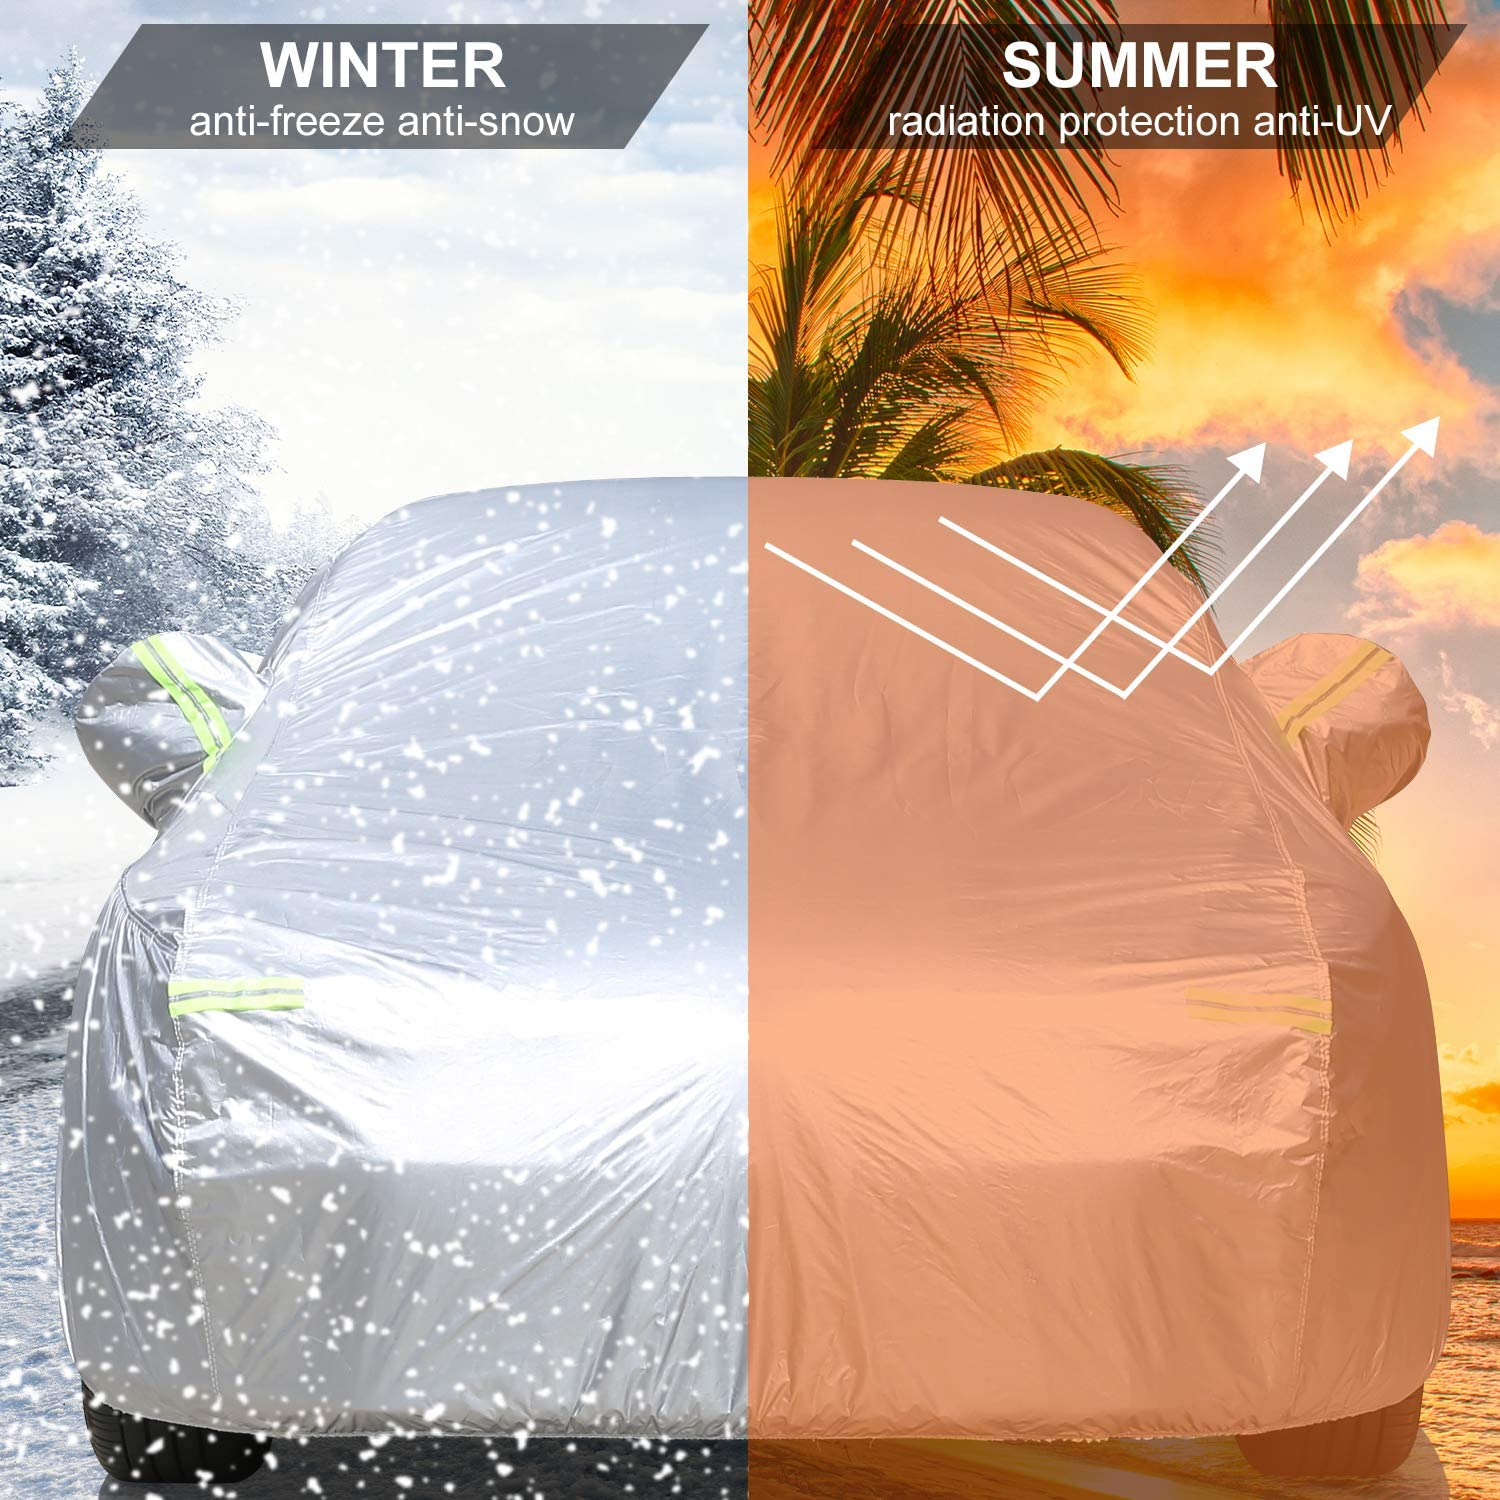 Mieziba Car Cover Waterproof All Weather,6 Layers Car Cover for Automobiles Outdoor Full Cover Sun Hail UV Dust Protection with Zipper,Universal Fit for Sedan up to 190